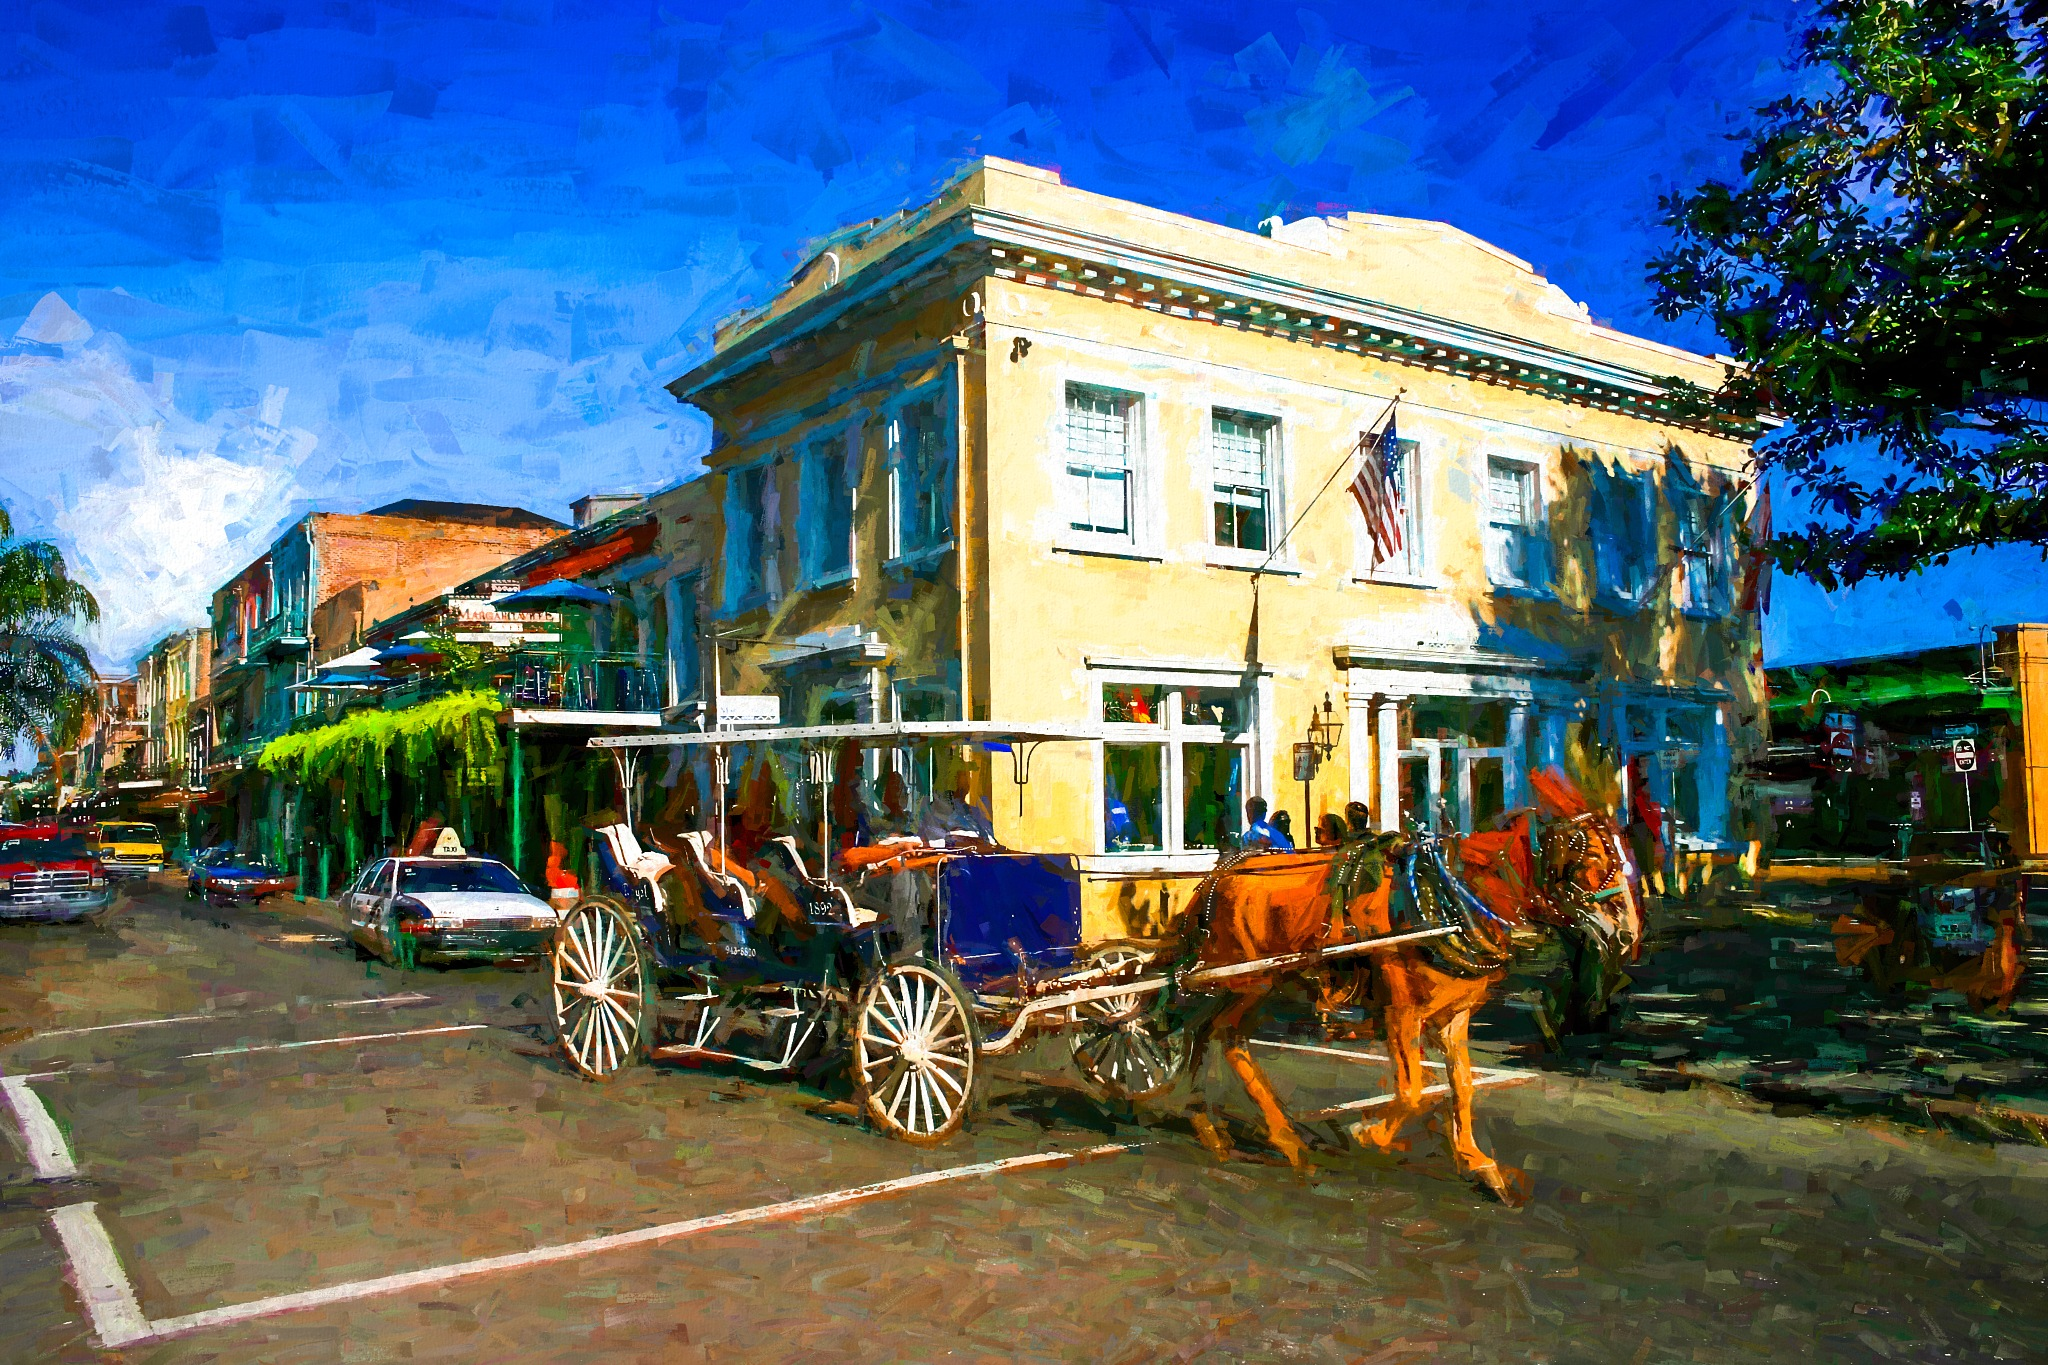 New Orleans Digital Painting by David Walters